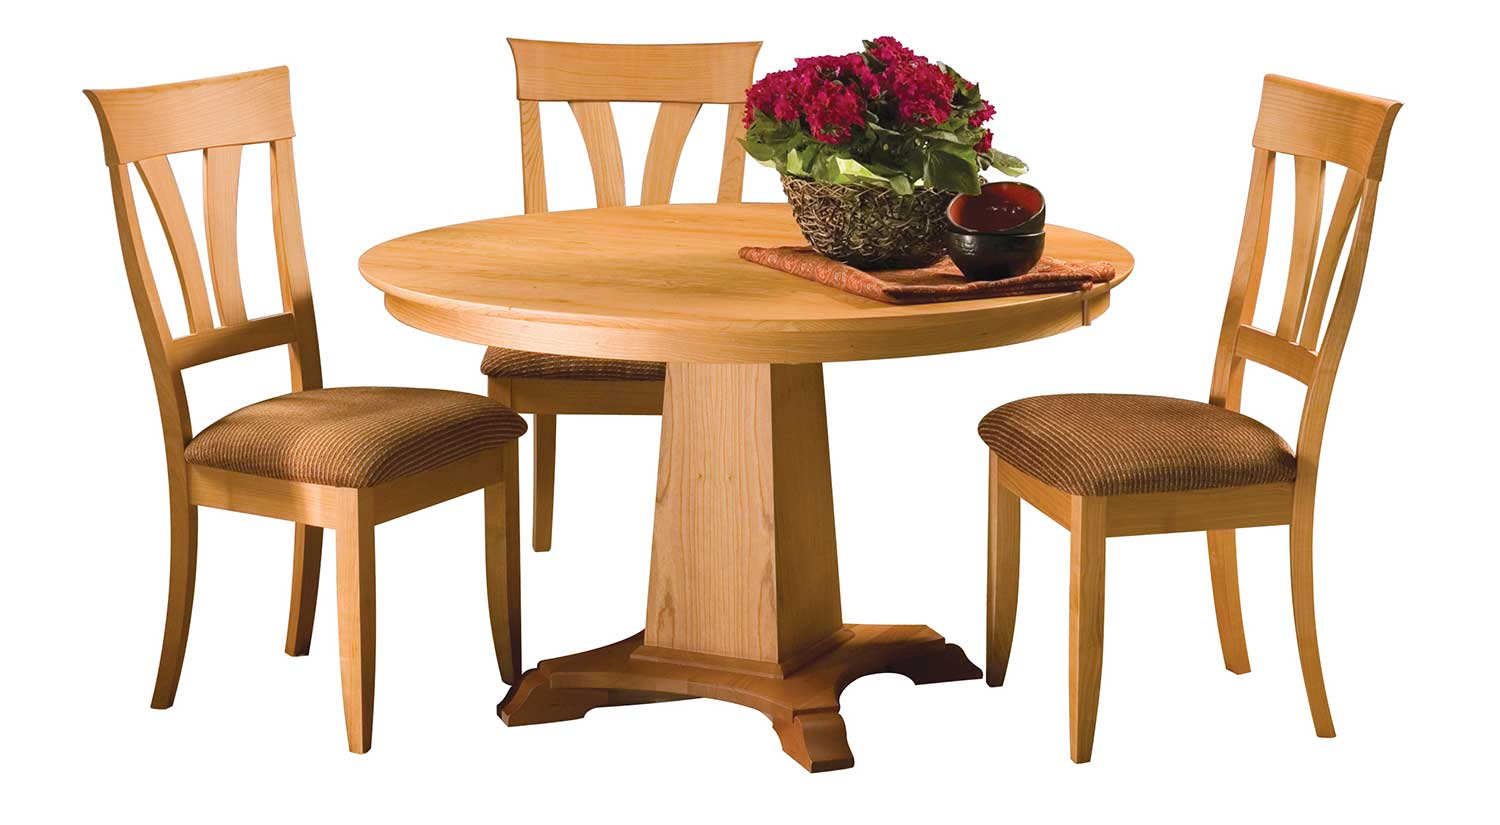 Circle Furniture Artisan Dining Table Dining Tables